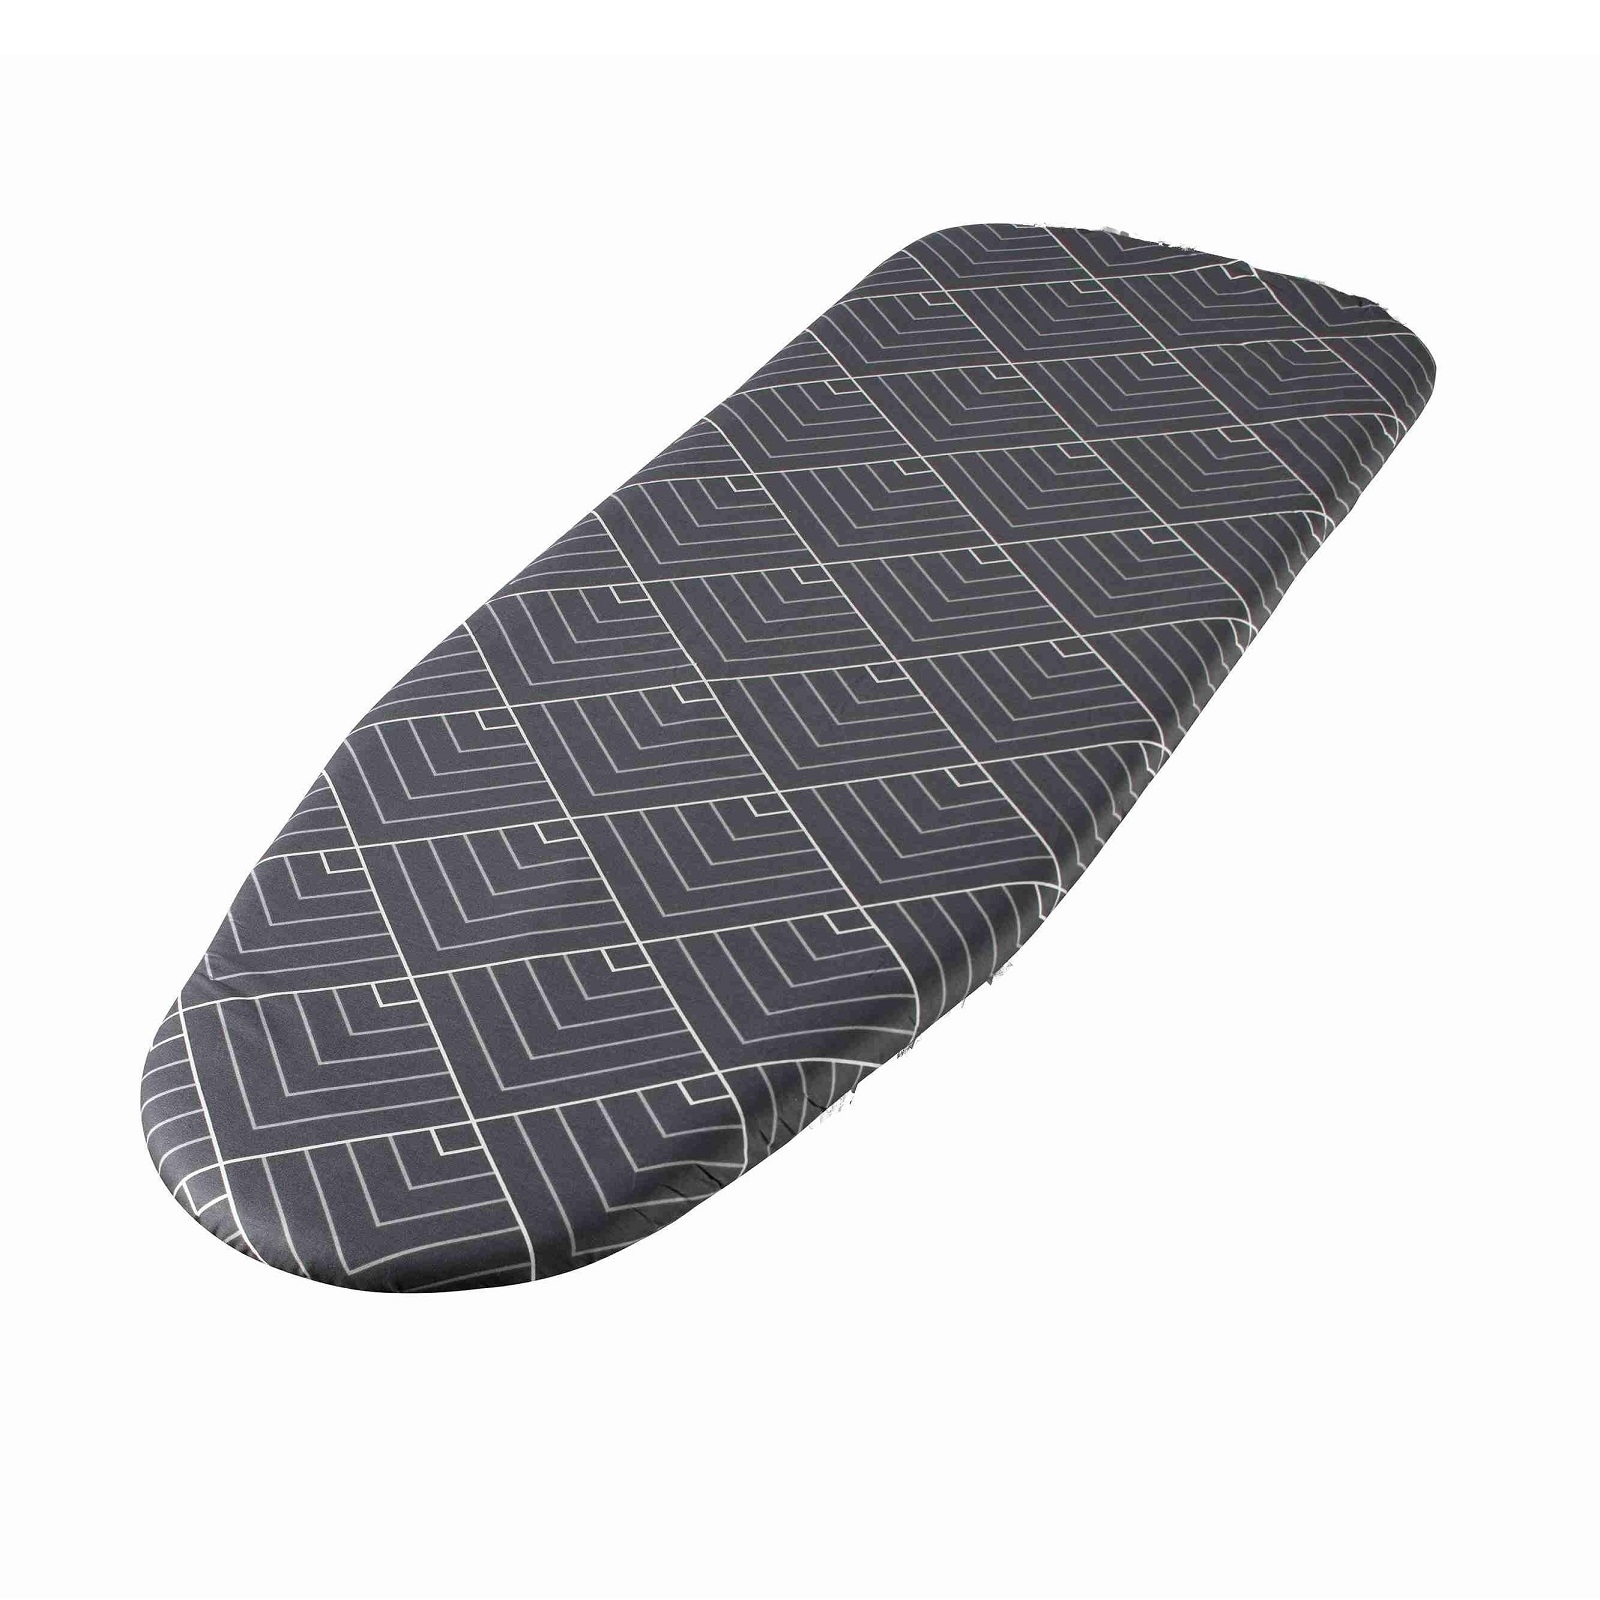 Topdry 140 x 46cm Ironing Plain Board Cover